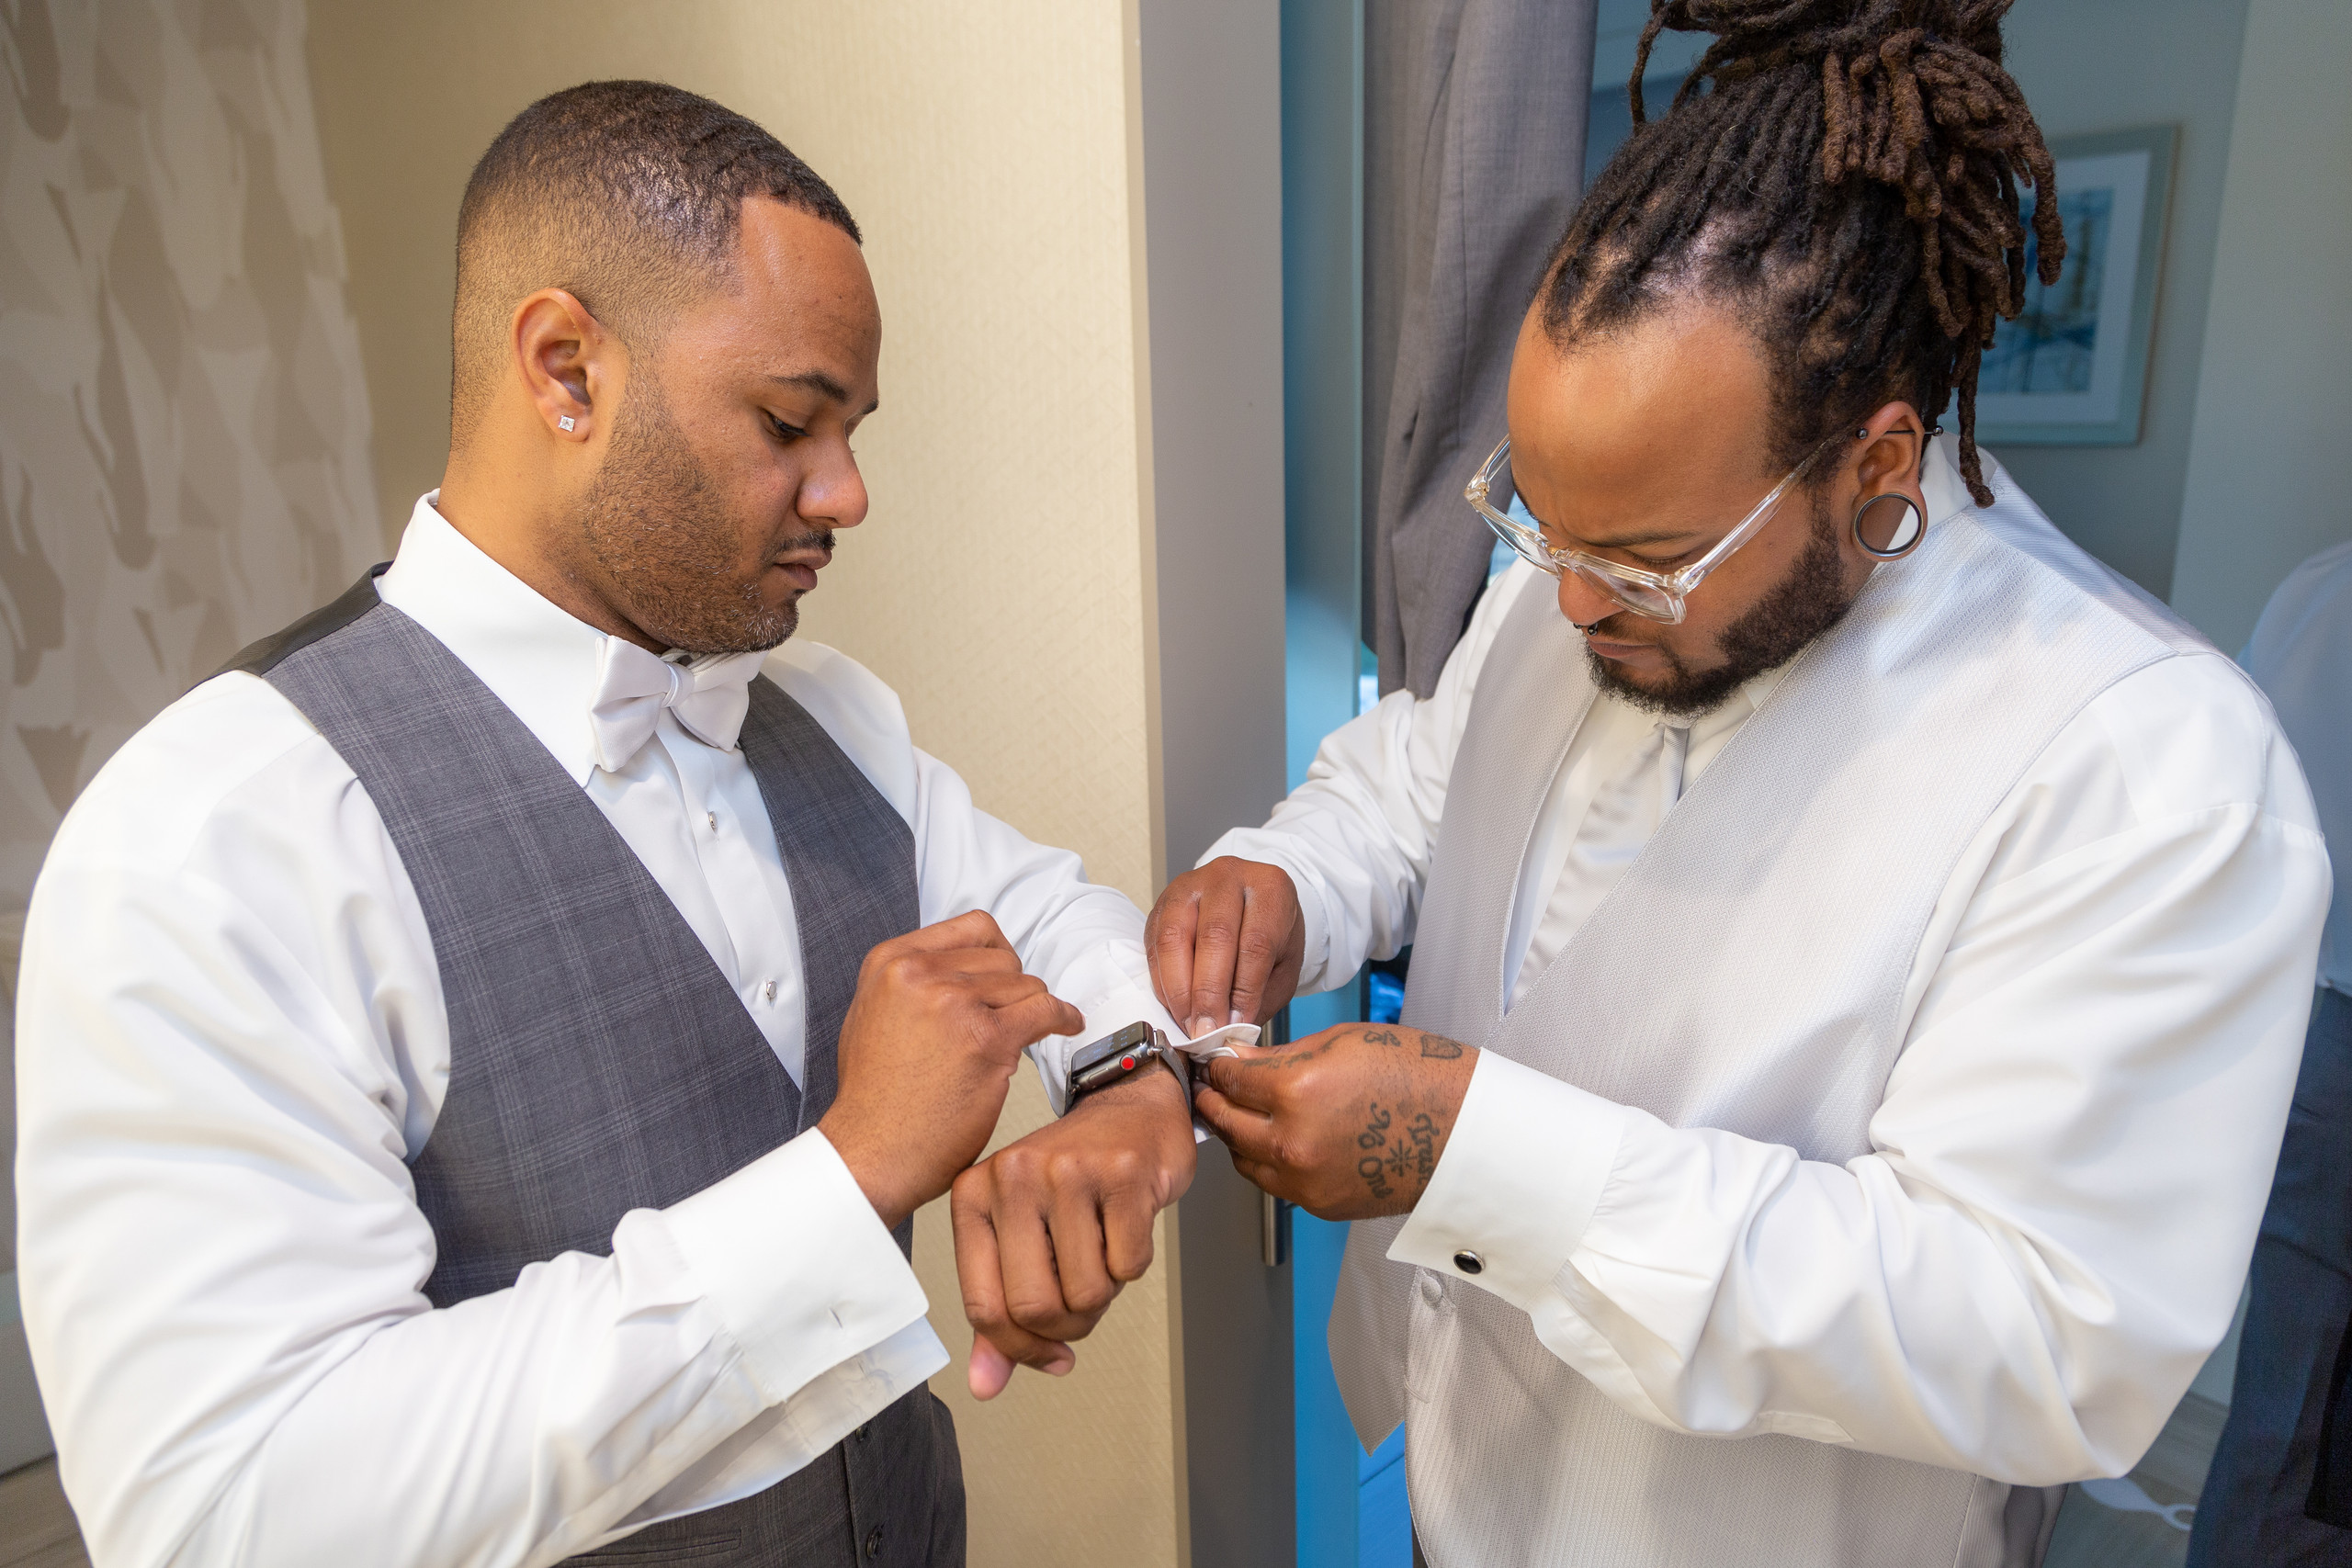 The best man helping the groom get ready before the wedding at the Hilton Main in Norfolk, Virginia.